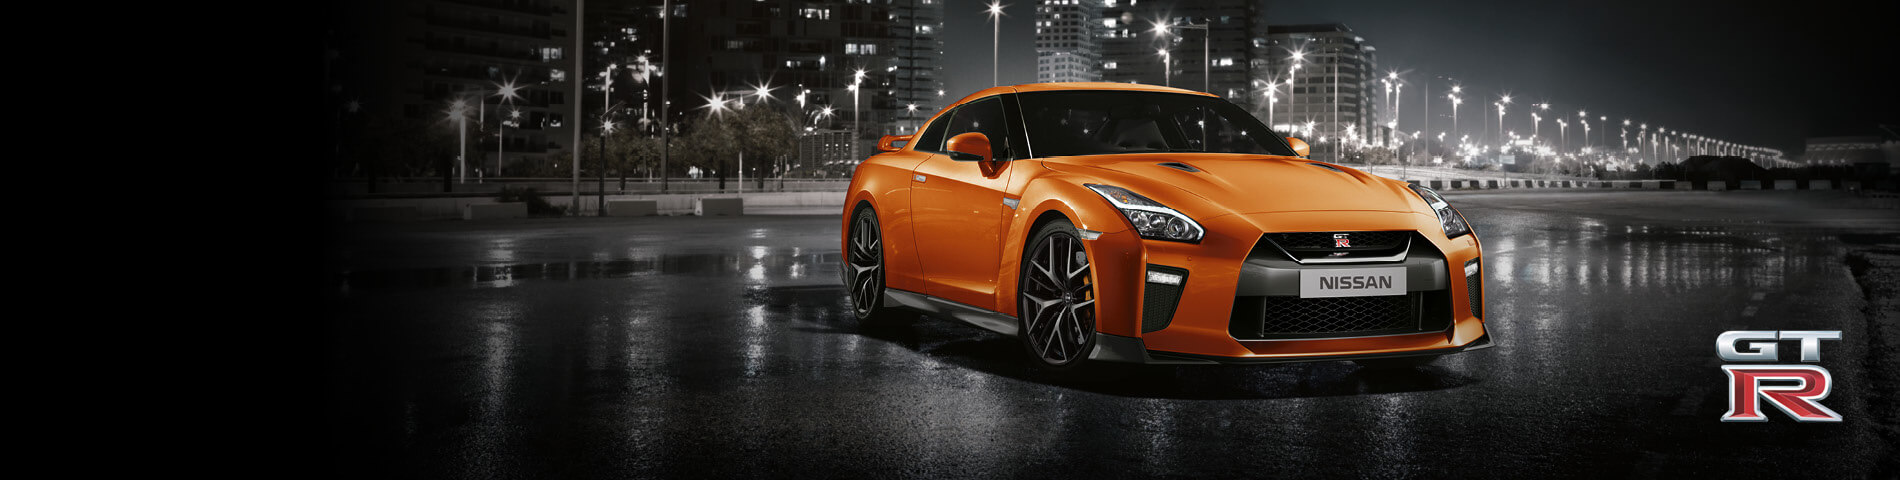 GT-R Homepage Banner